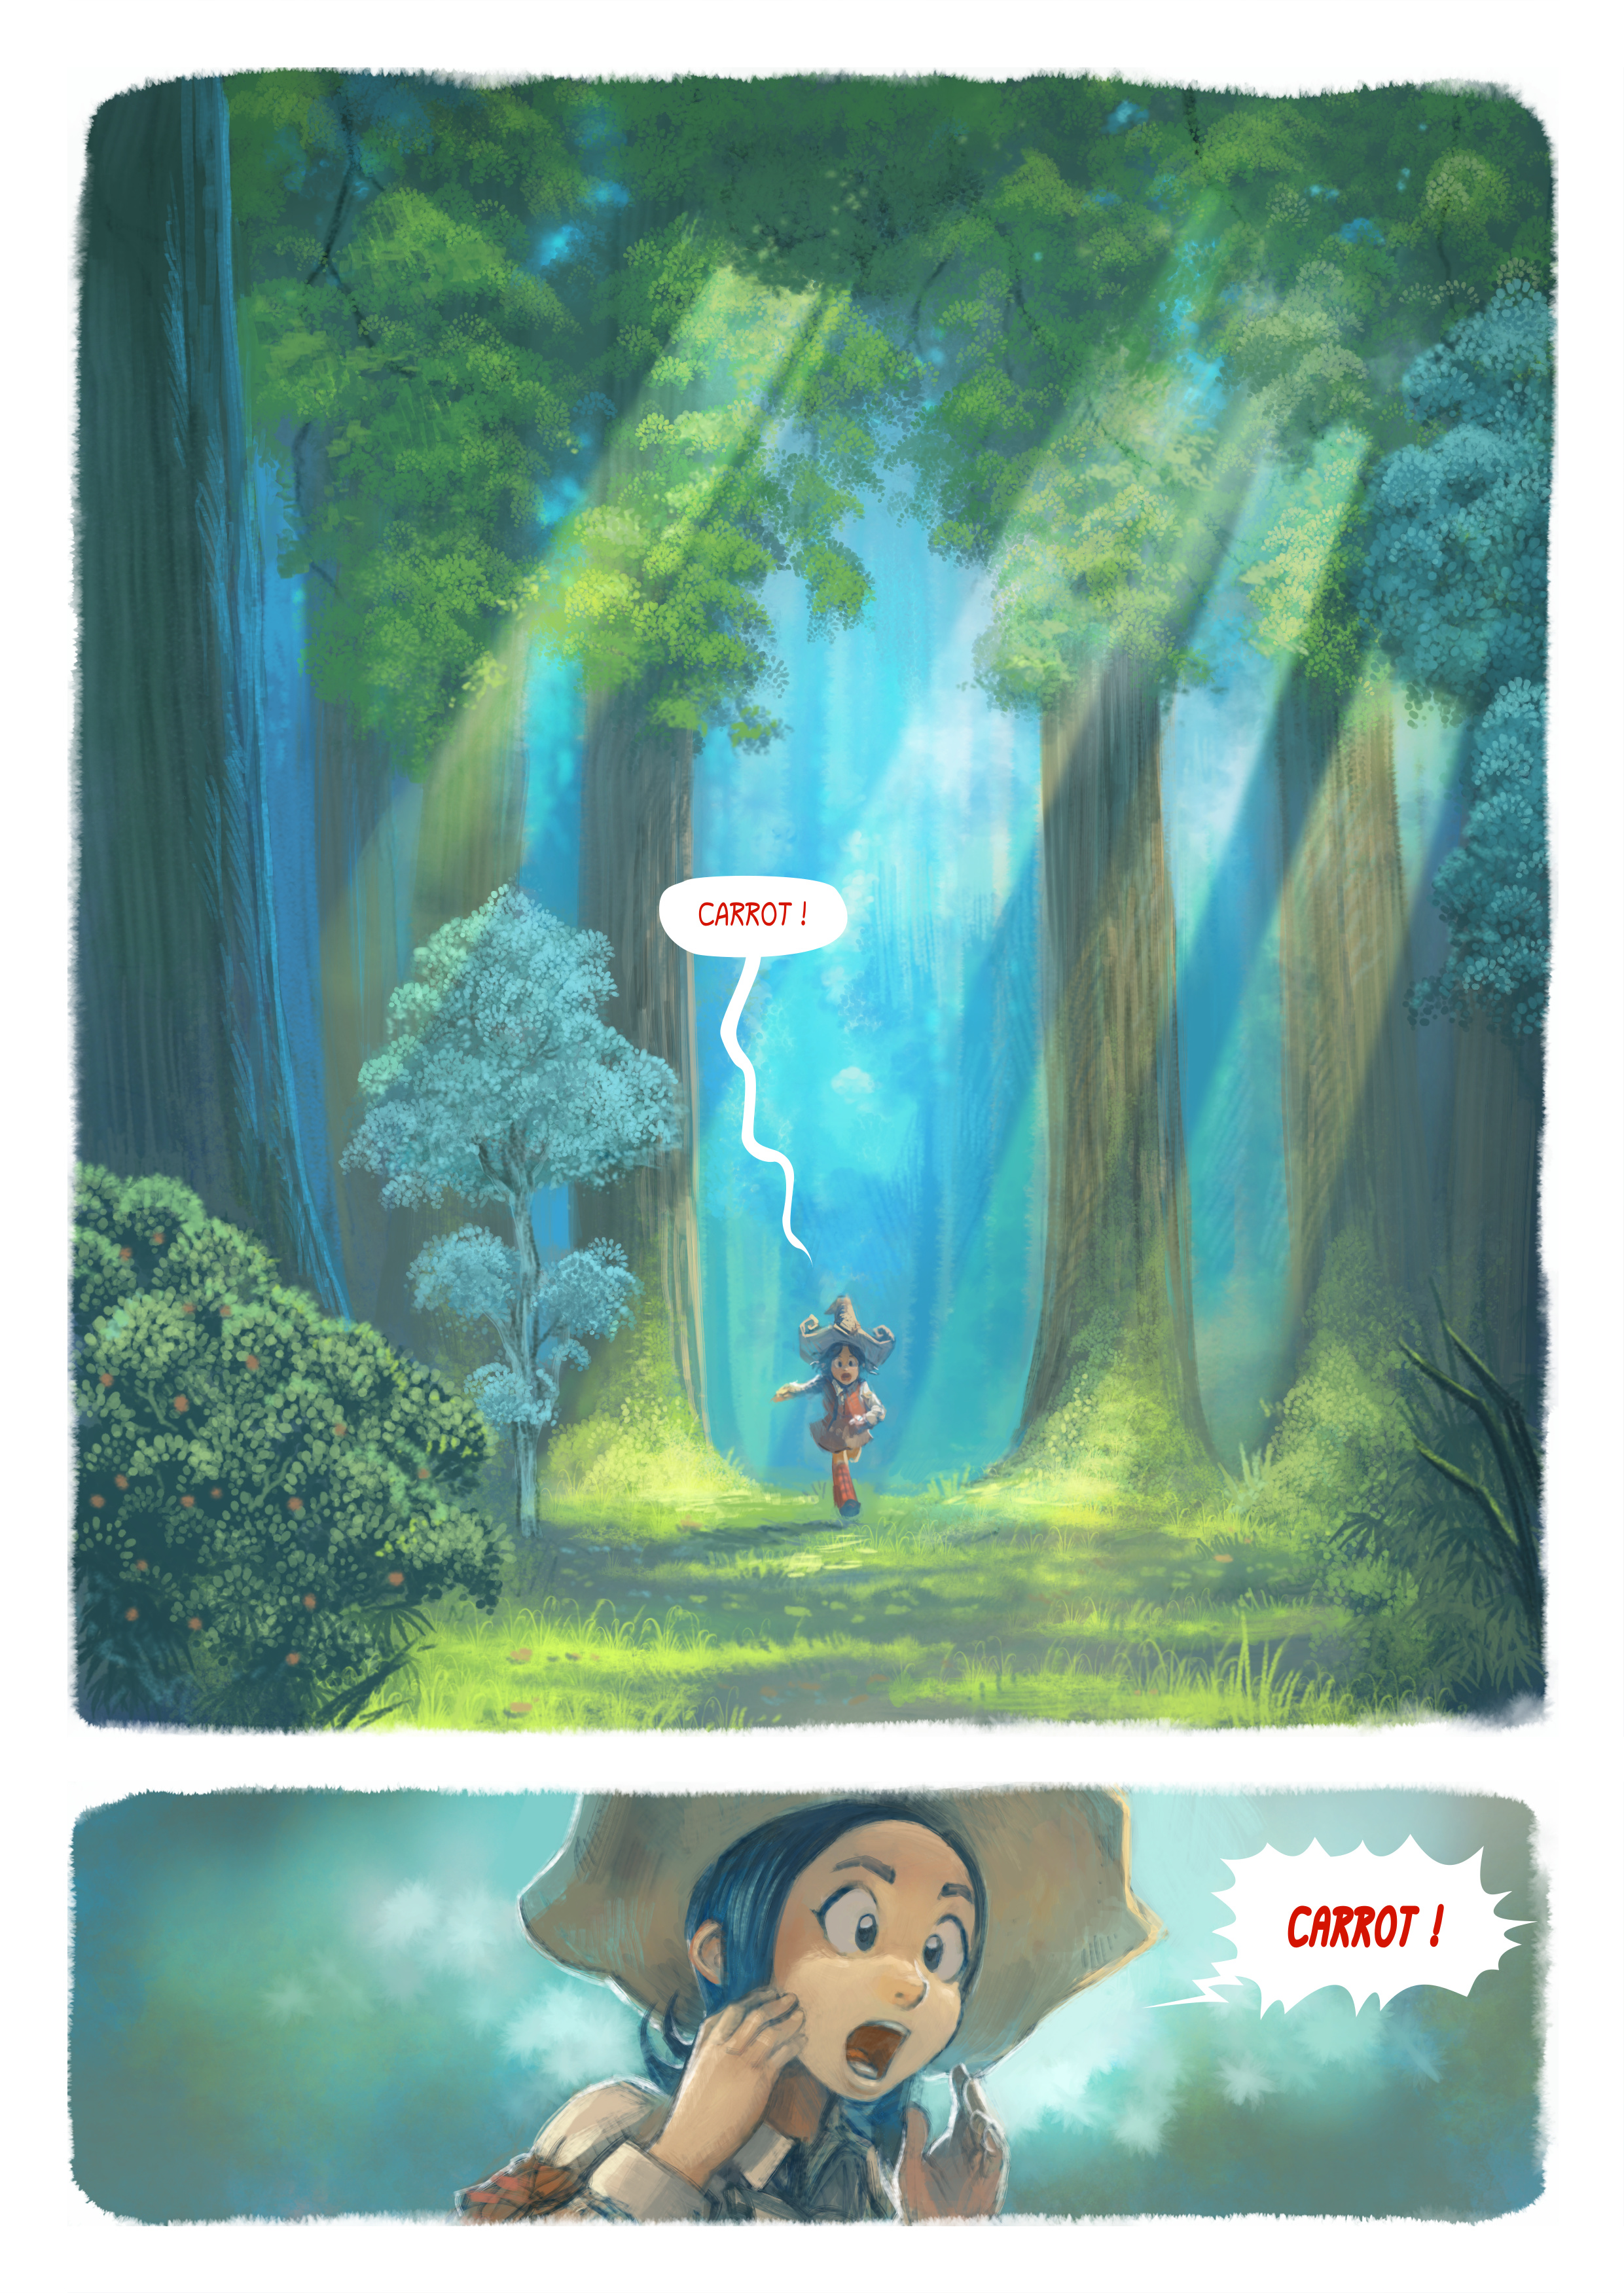 A webcomic page of Pepper&Carrot, episode 7 [ph], page 1